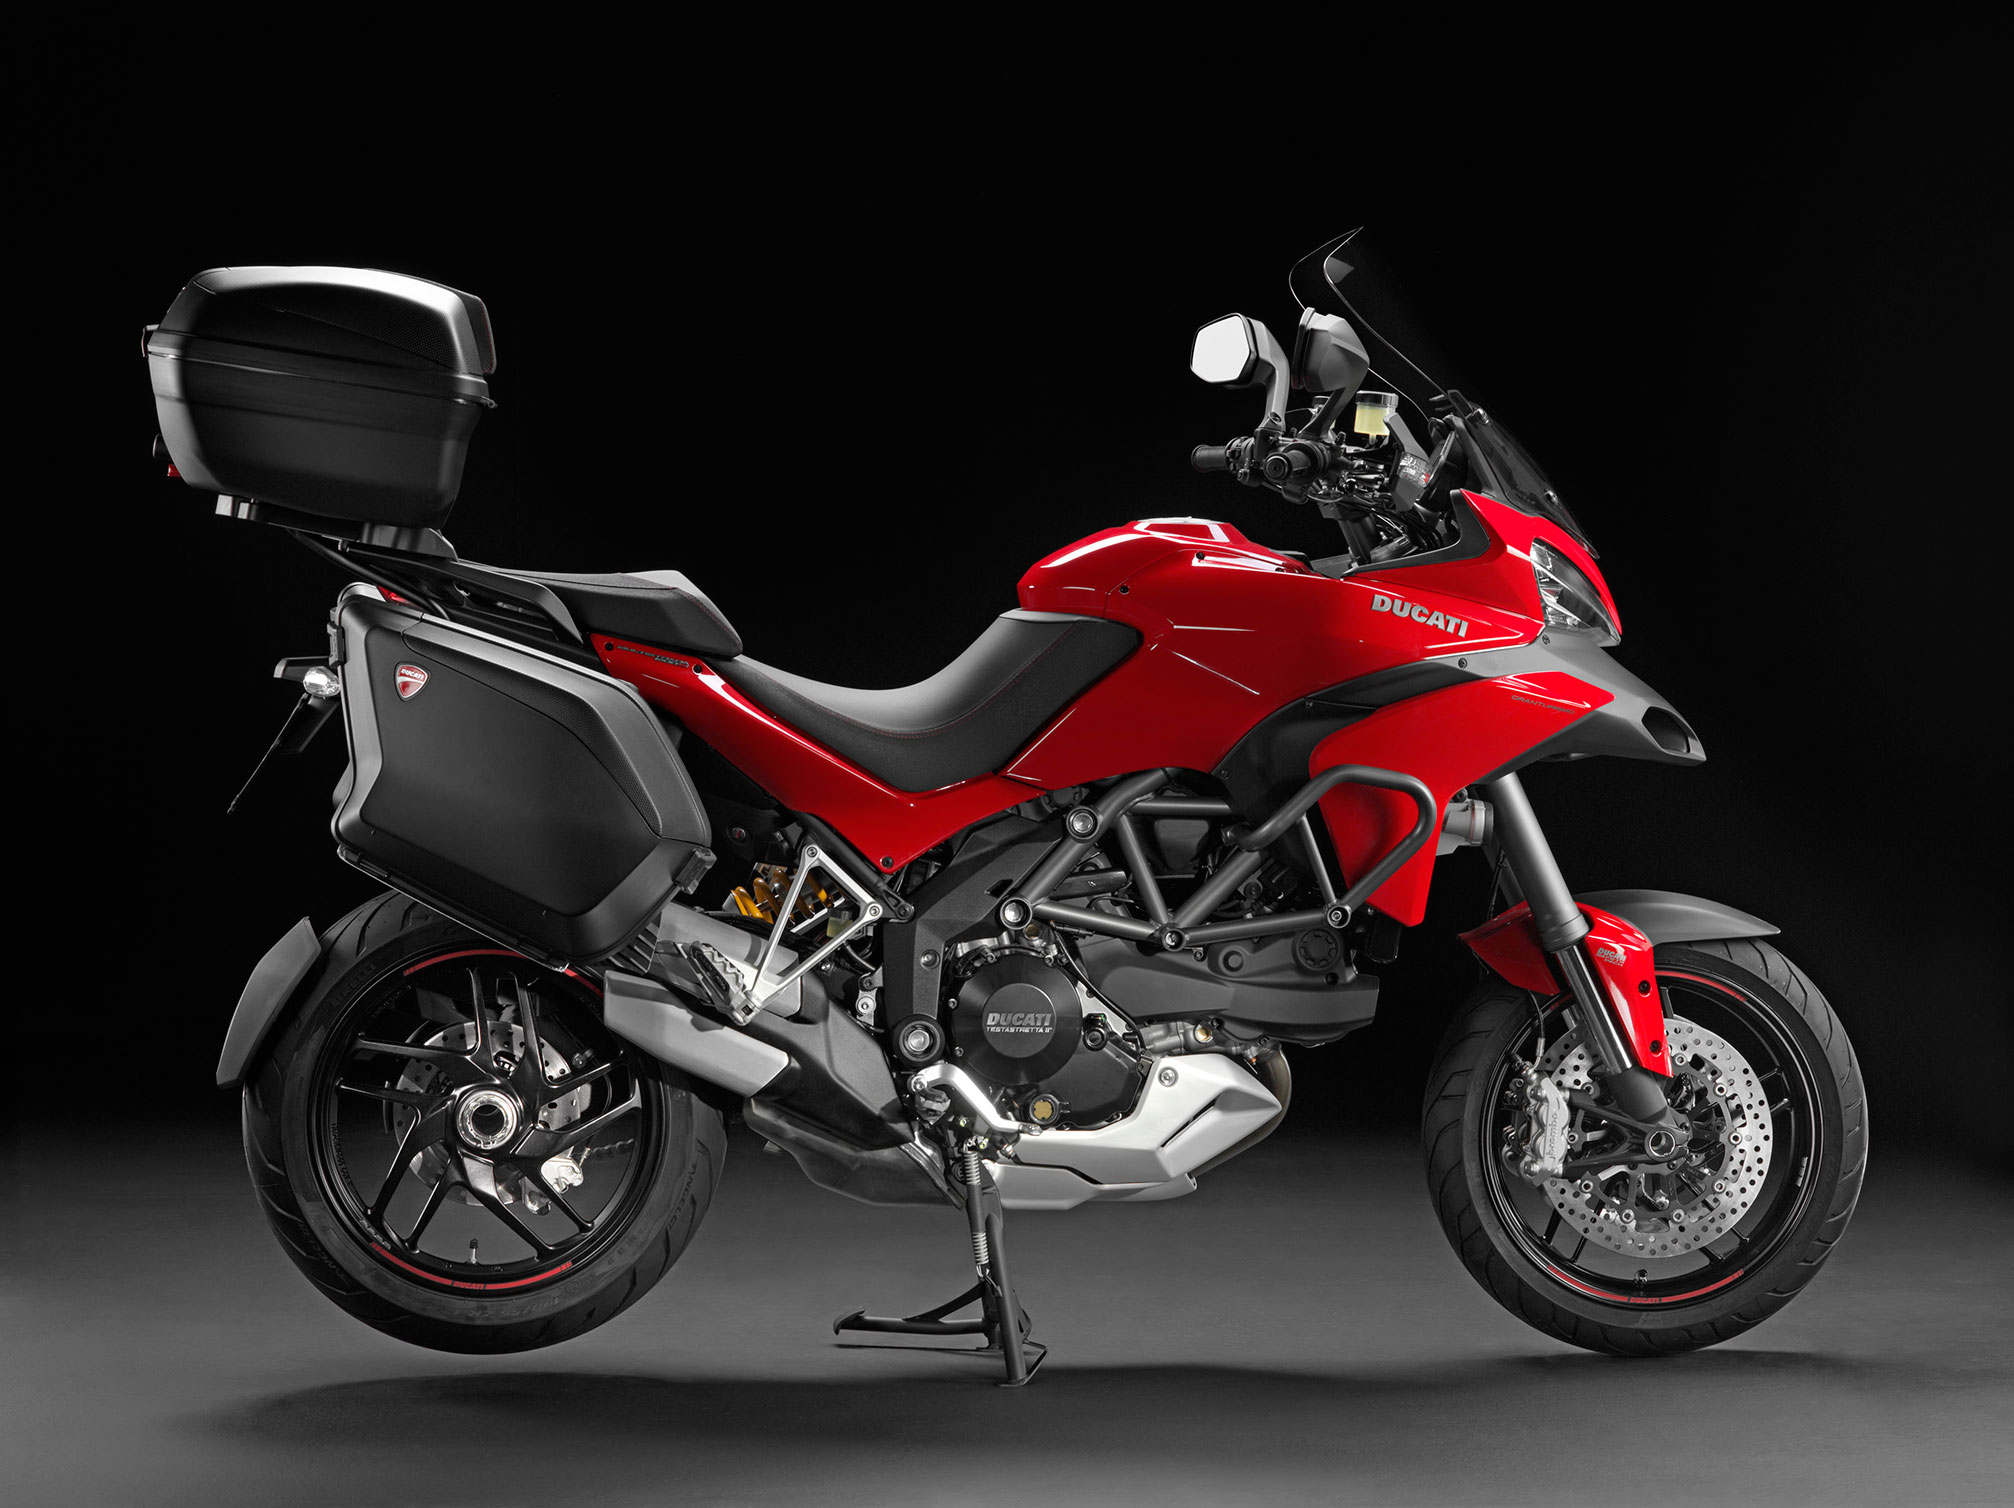 ducati multistrada 1200 s granturismo specs 2013 2014 autoevolution. Black Bedroom Furniture Sets. Home Design Ideas